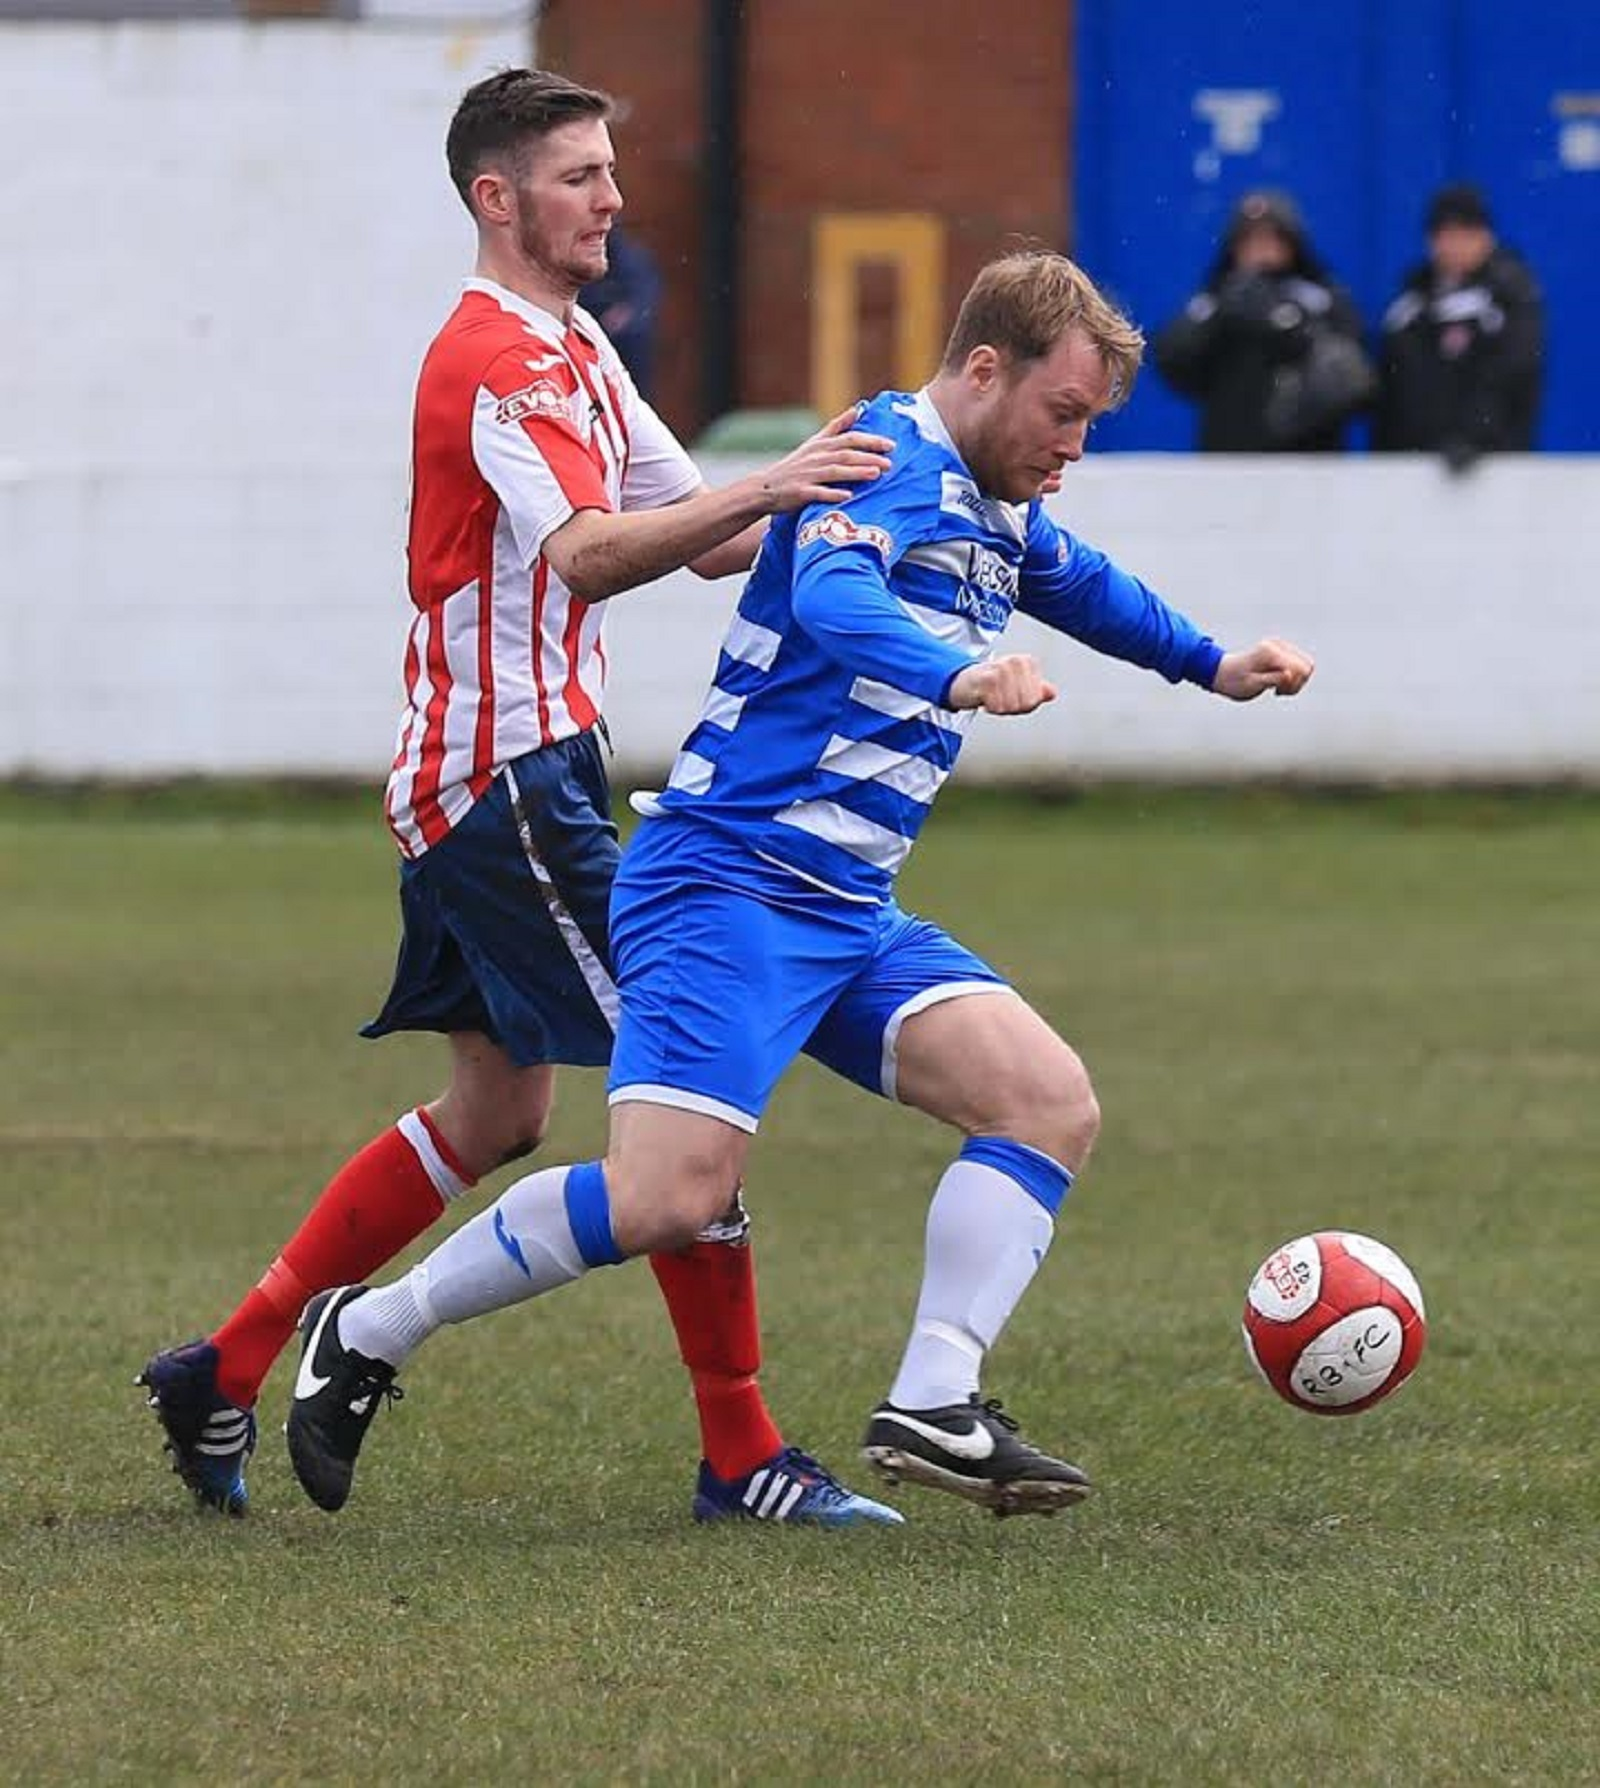 Jody Banim holds off a Witton player